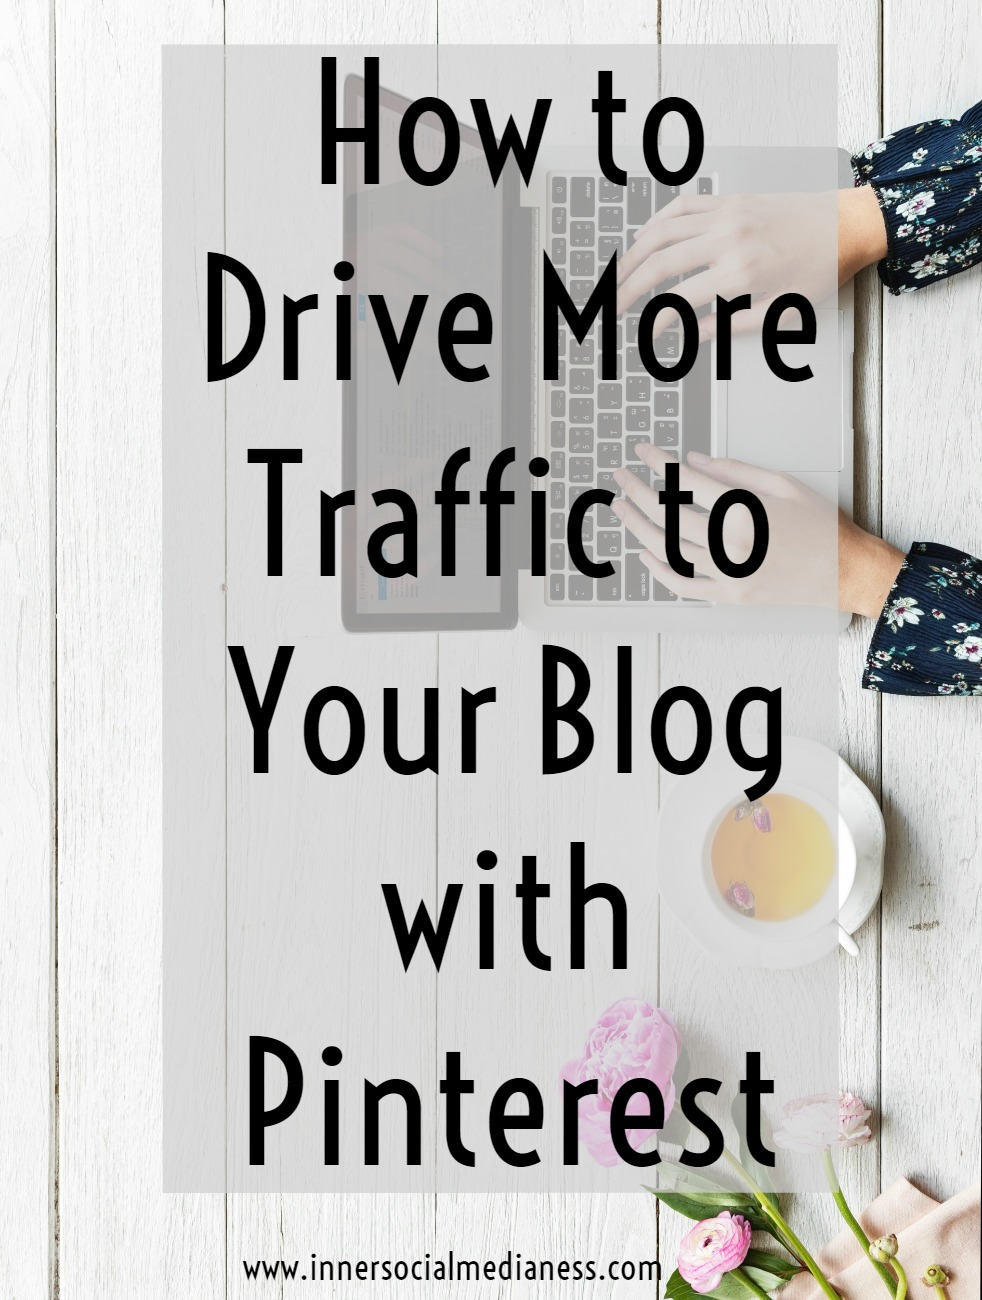 How to Drive More Traffic to Your Blog with Pinterest - What's the ONE thing you can do to increase your site traffic from Pinterest? And it's not just creating better images for your blog - you have to do more than that. Take a look at these easy steps to get more people to click on your pin to read your blog post. #pinterestmarketing #blog #drivetraffic